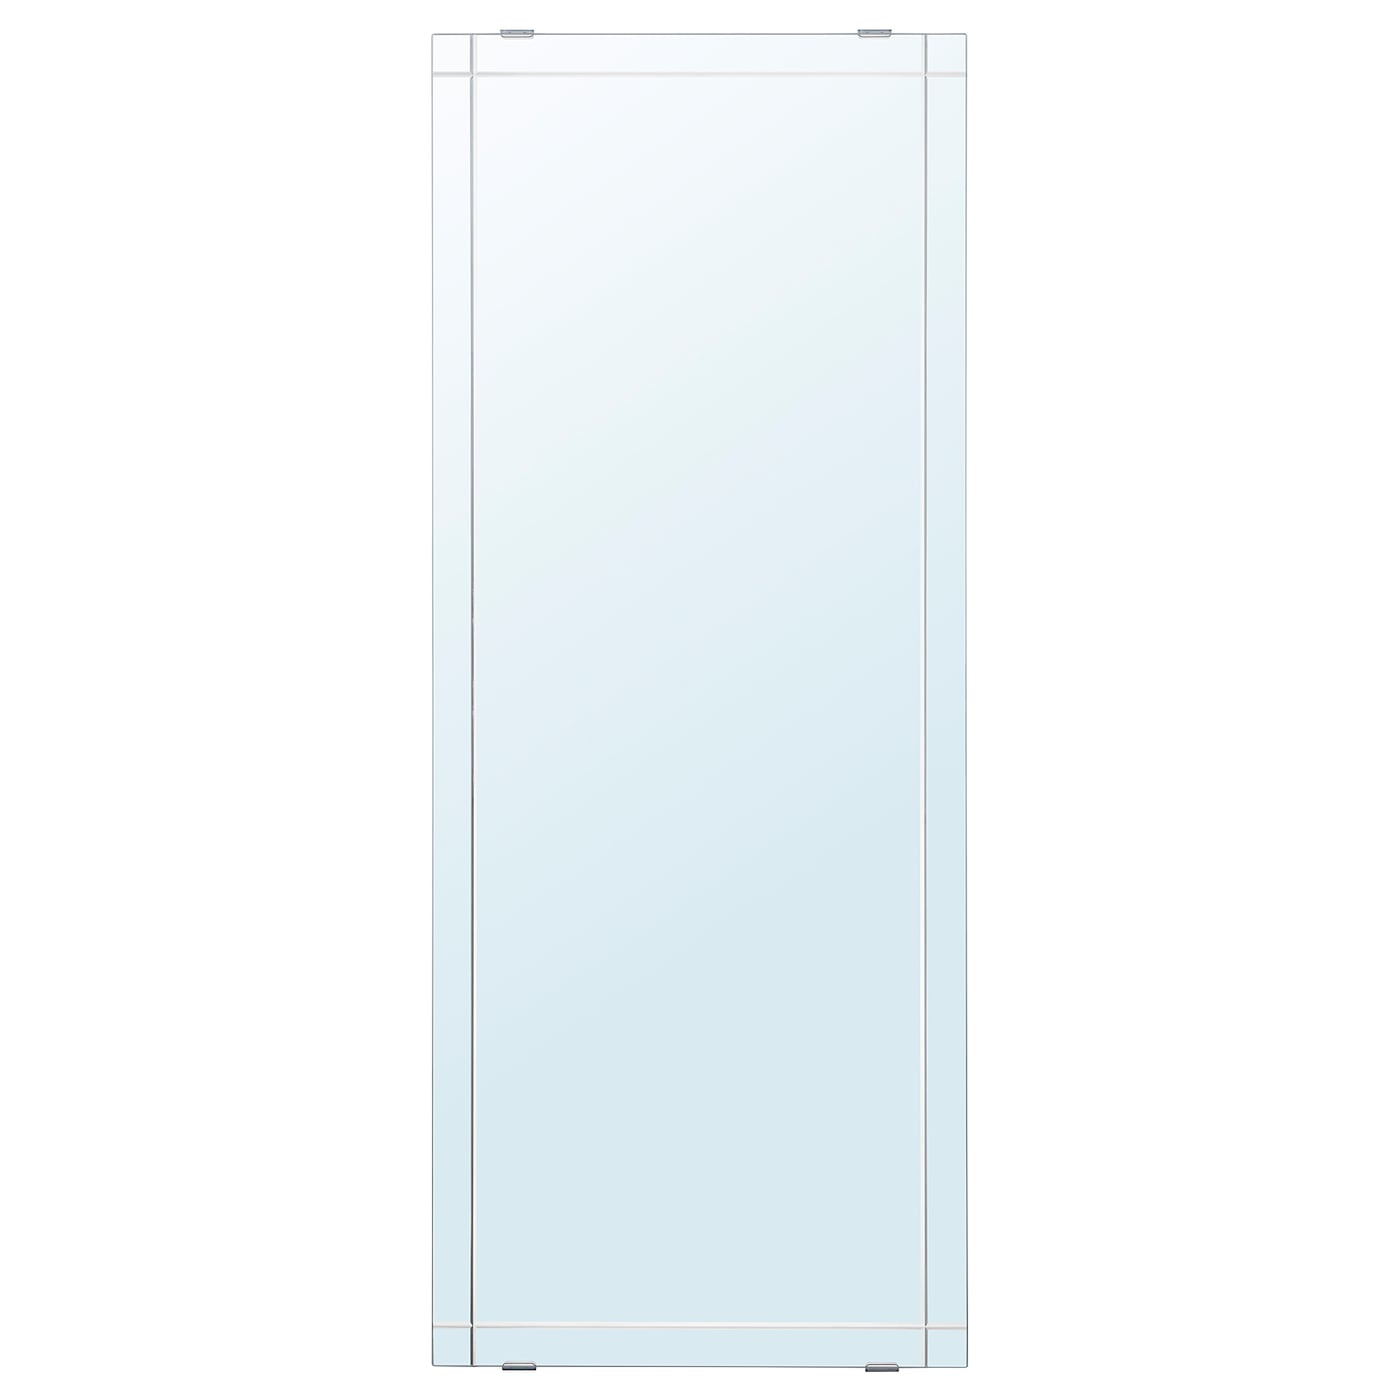 IKEA EIDSÅ mirror Full-length mirror. Provided with safety film - reduces damage if glass is broken.